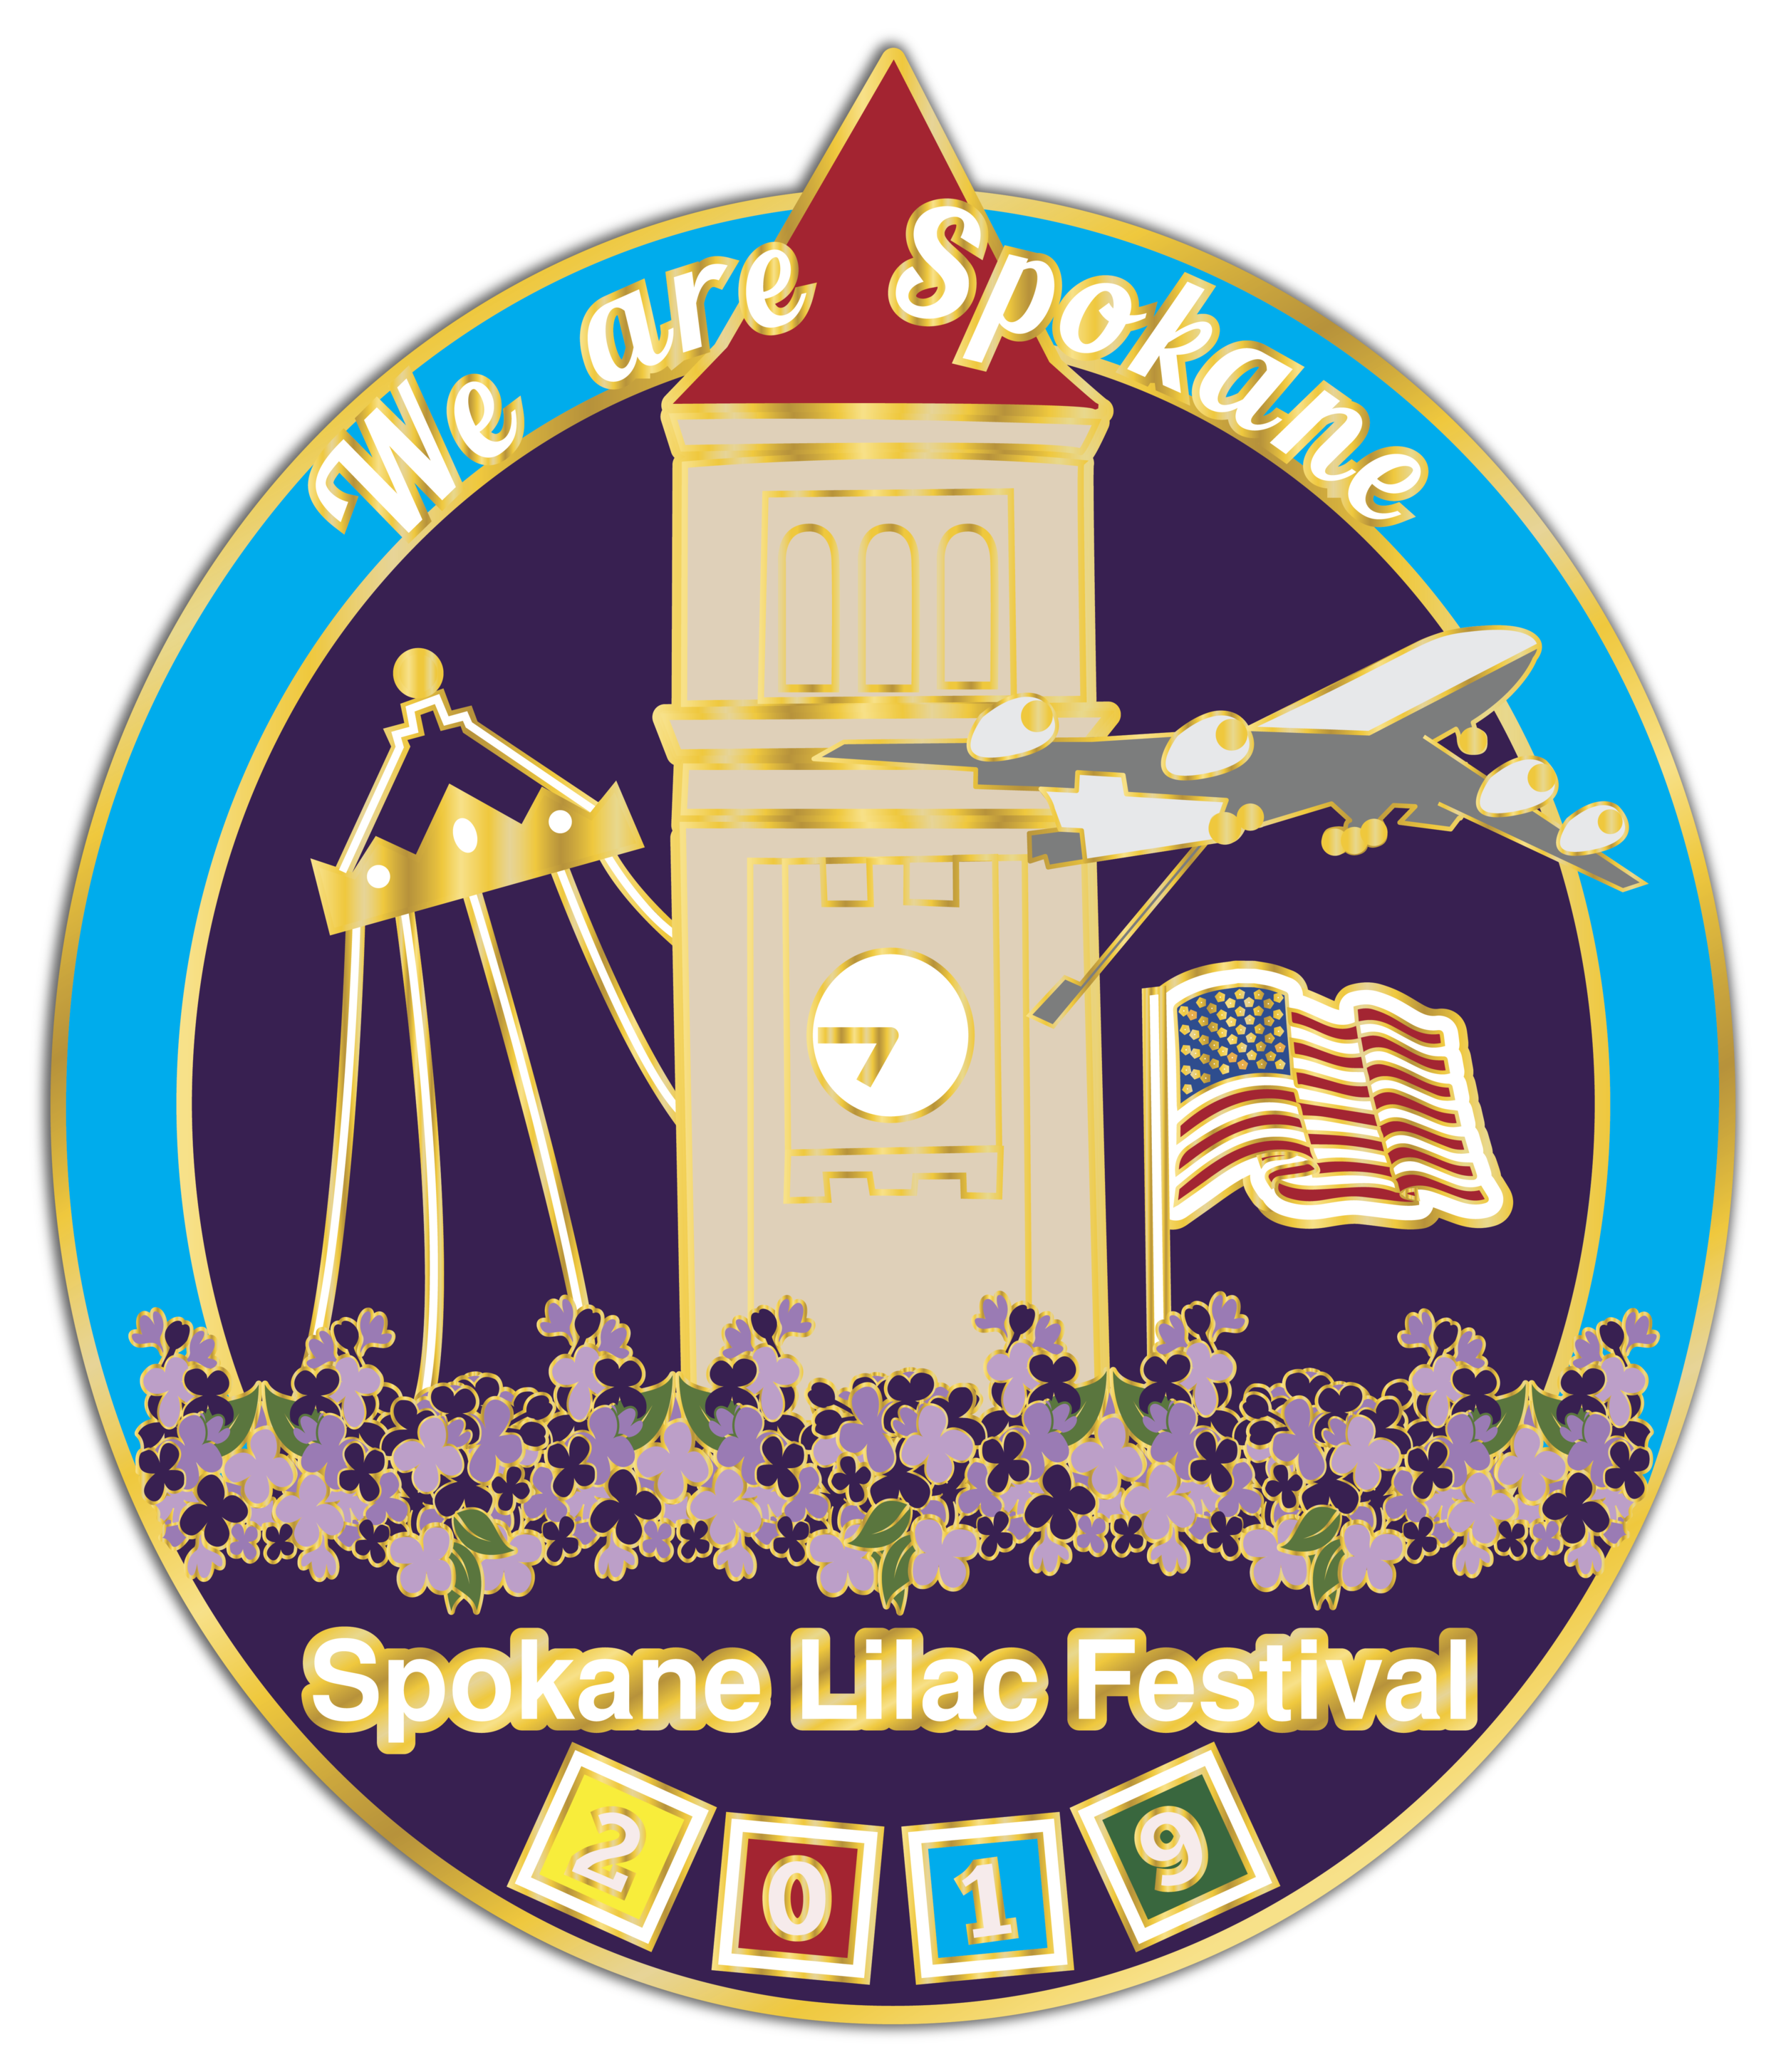 SpoLilacFestival_18x24_PinBoard.png